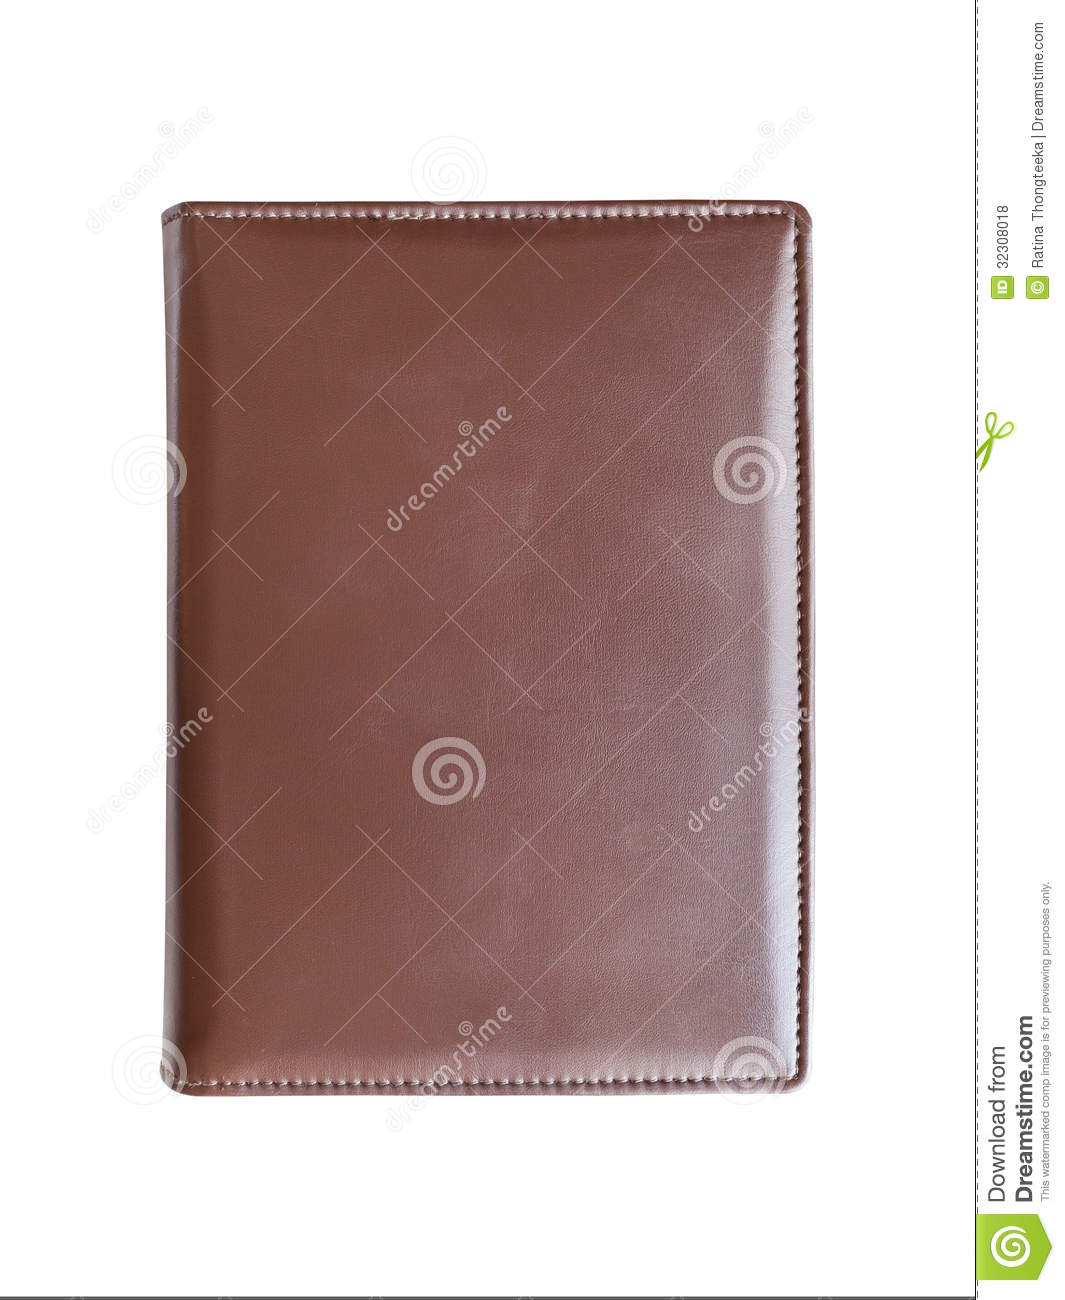 Book Cover White Zip : Leather brown book cover stock photo image of closeup